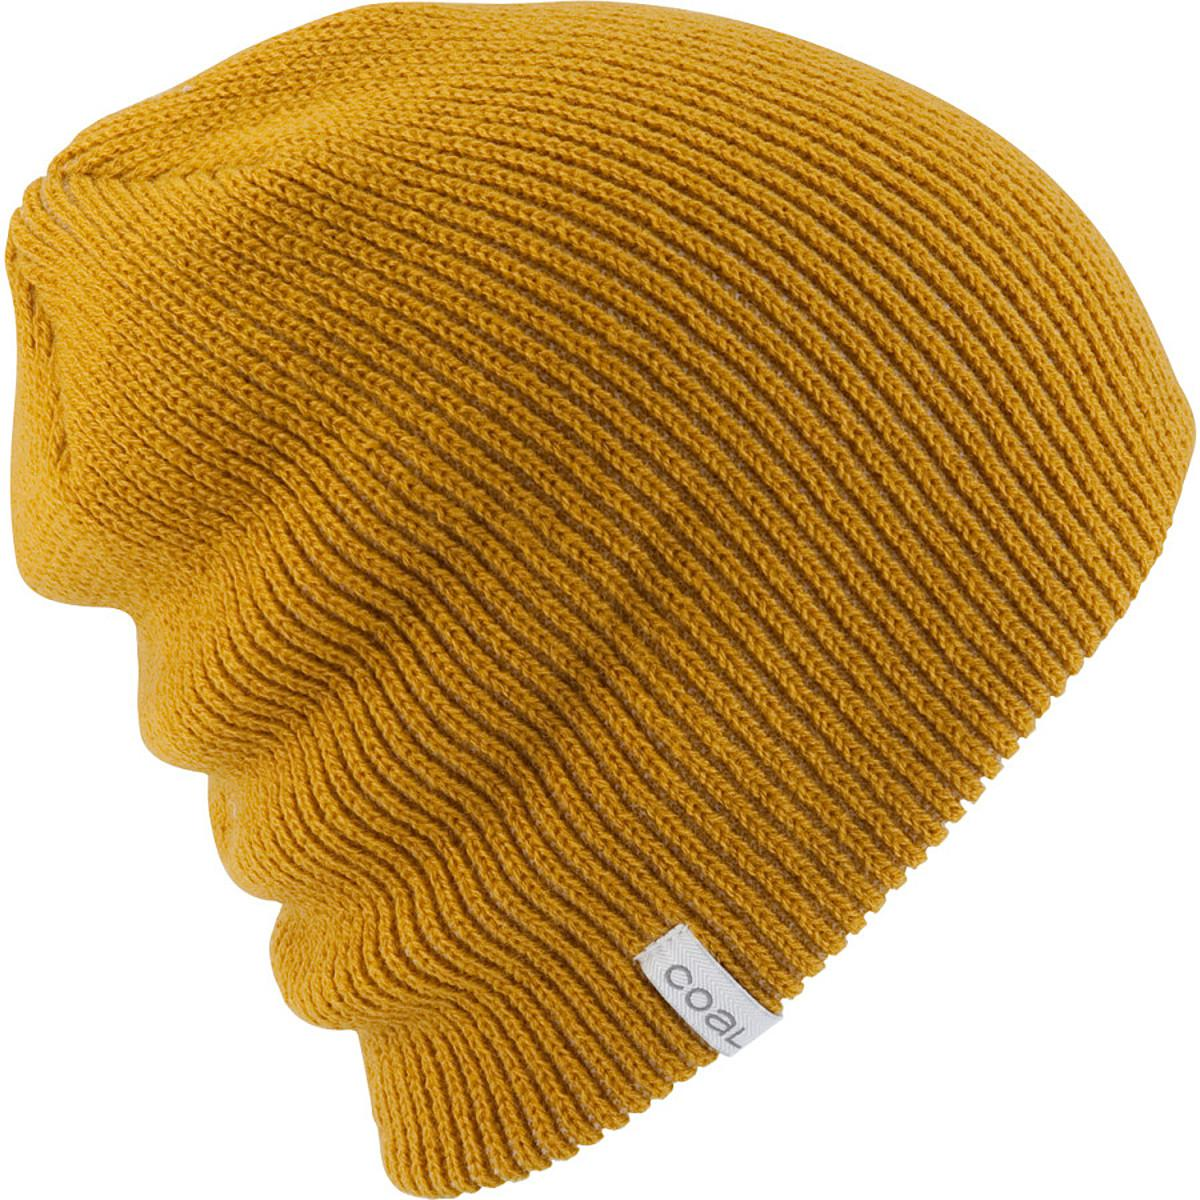 Lyst - Coal Frena Solid Beanie in Yellow 43affdbc6e2